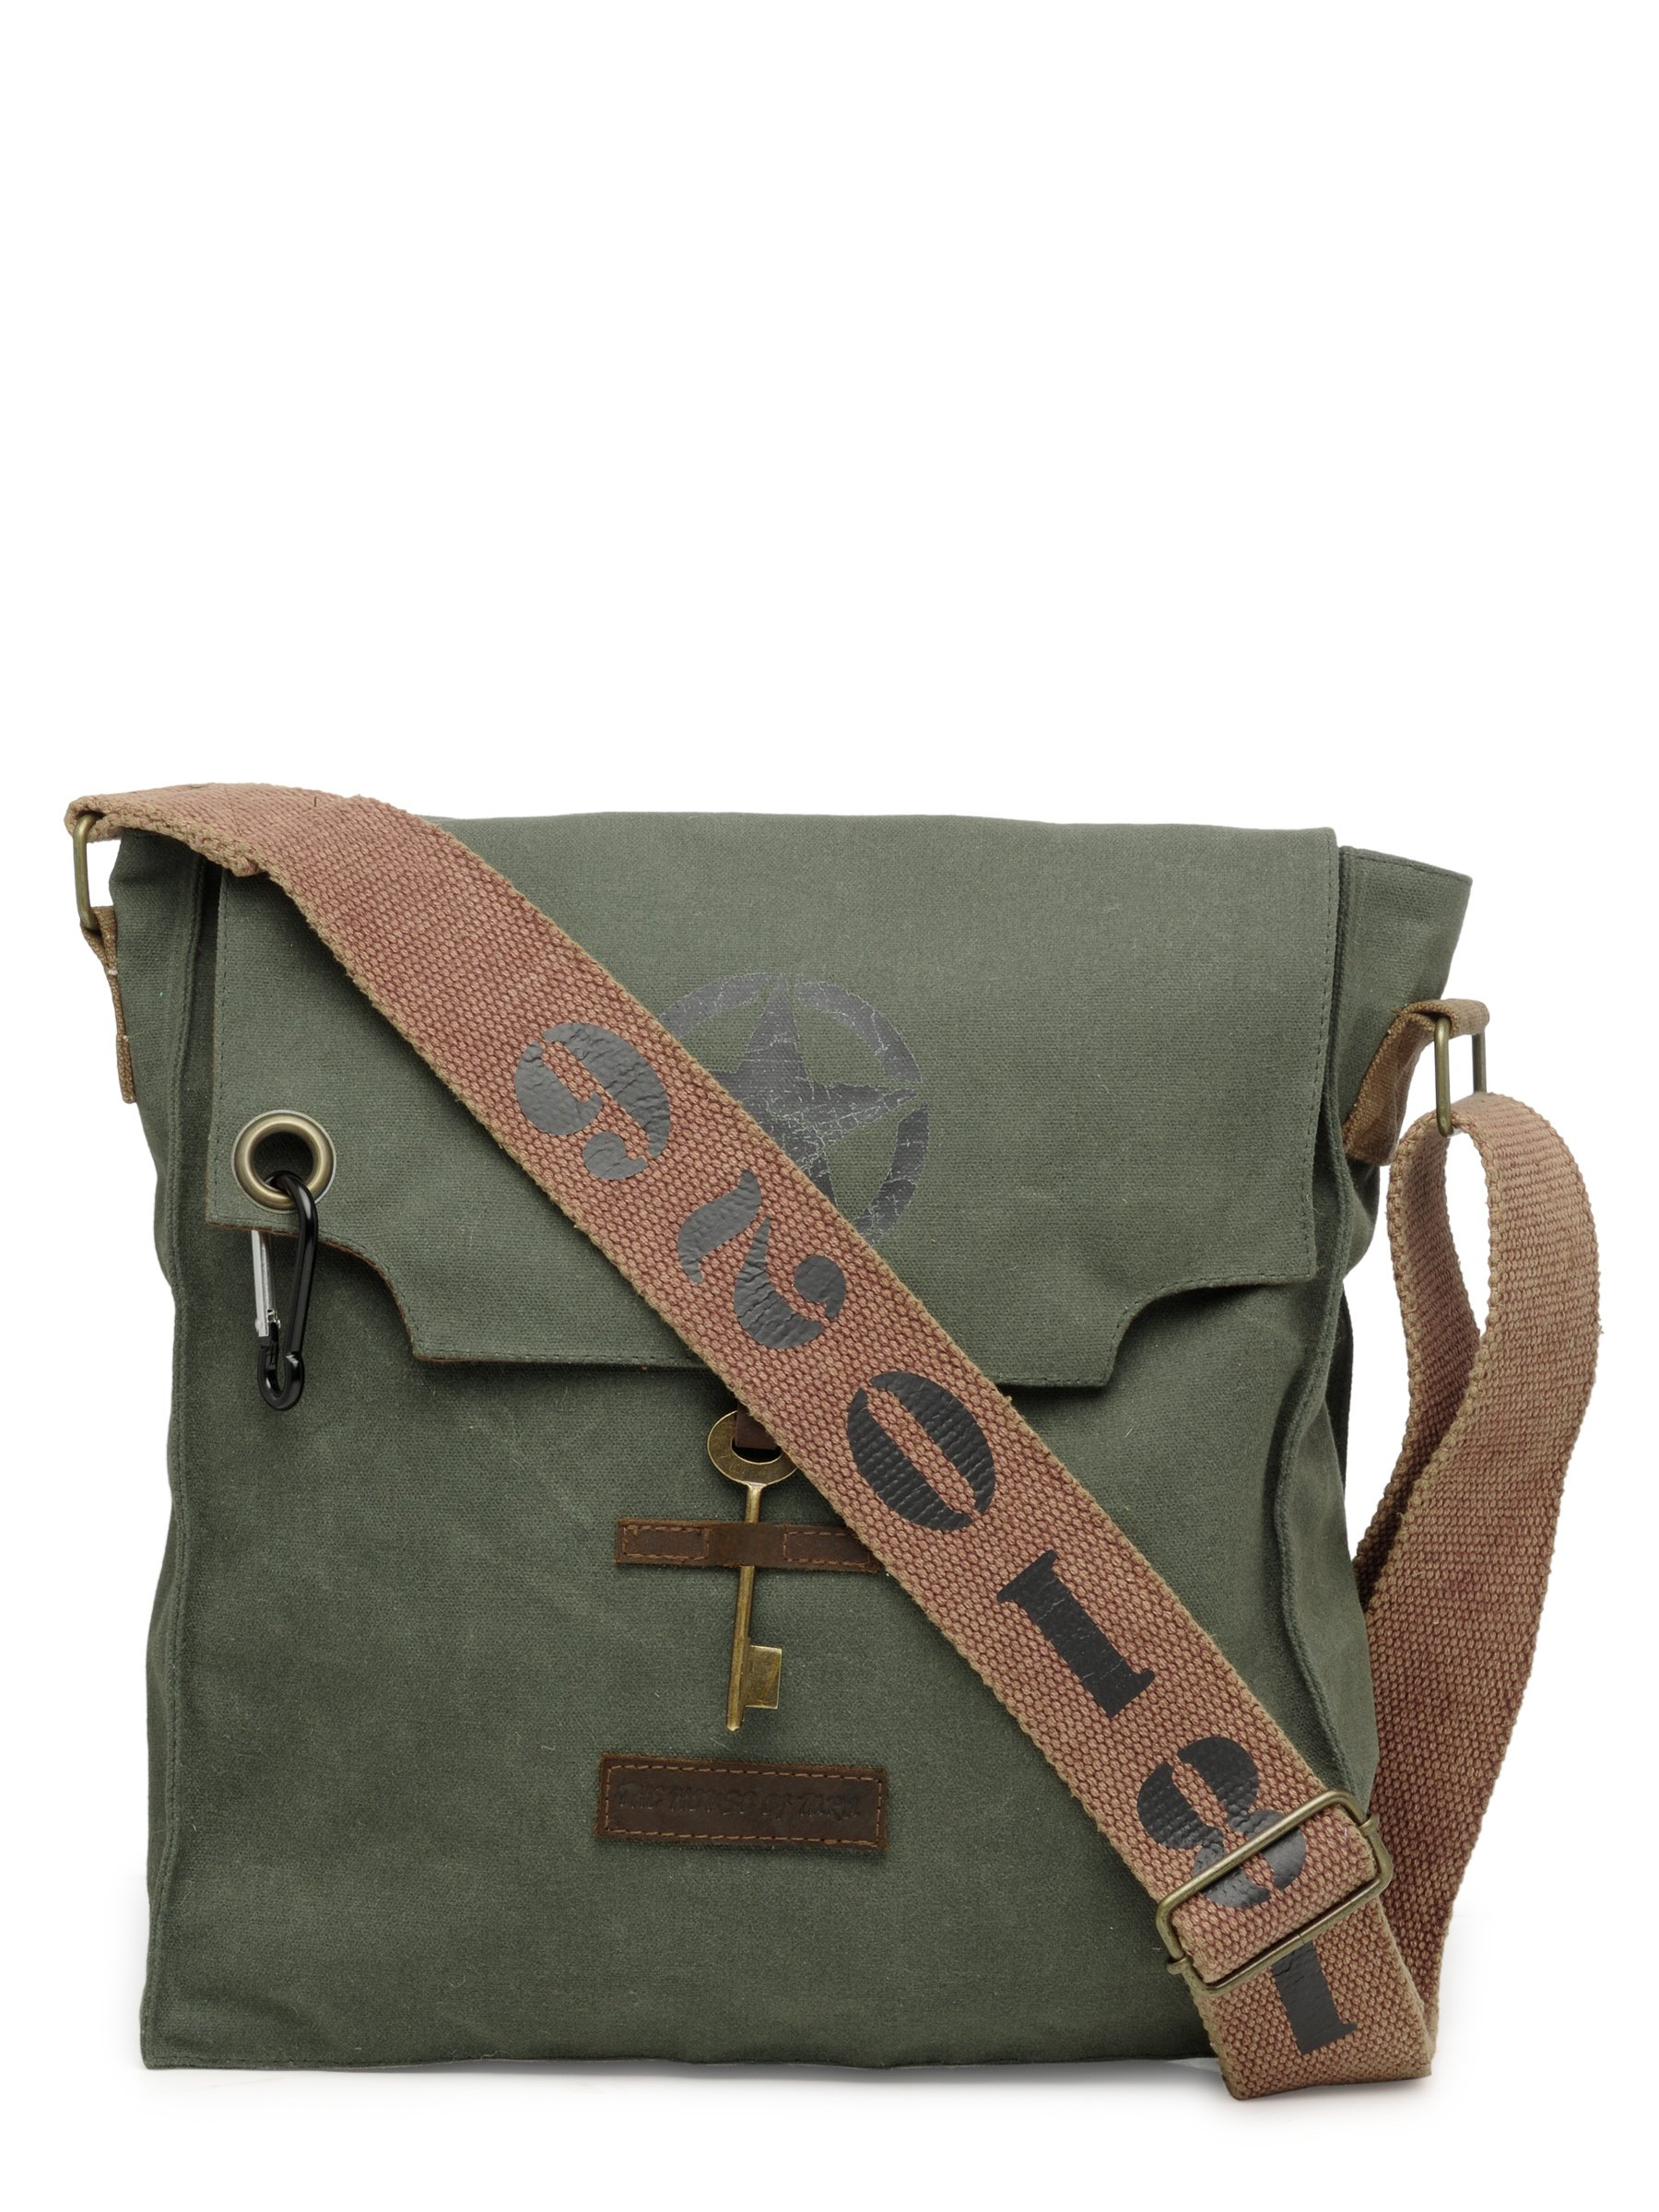 The House Of Tara 100% Cotton Canvas Messenger Bag in Distress Finish (Moss Green) HTMB 072 product image